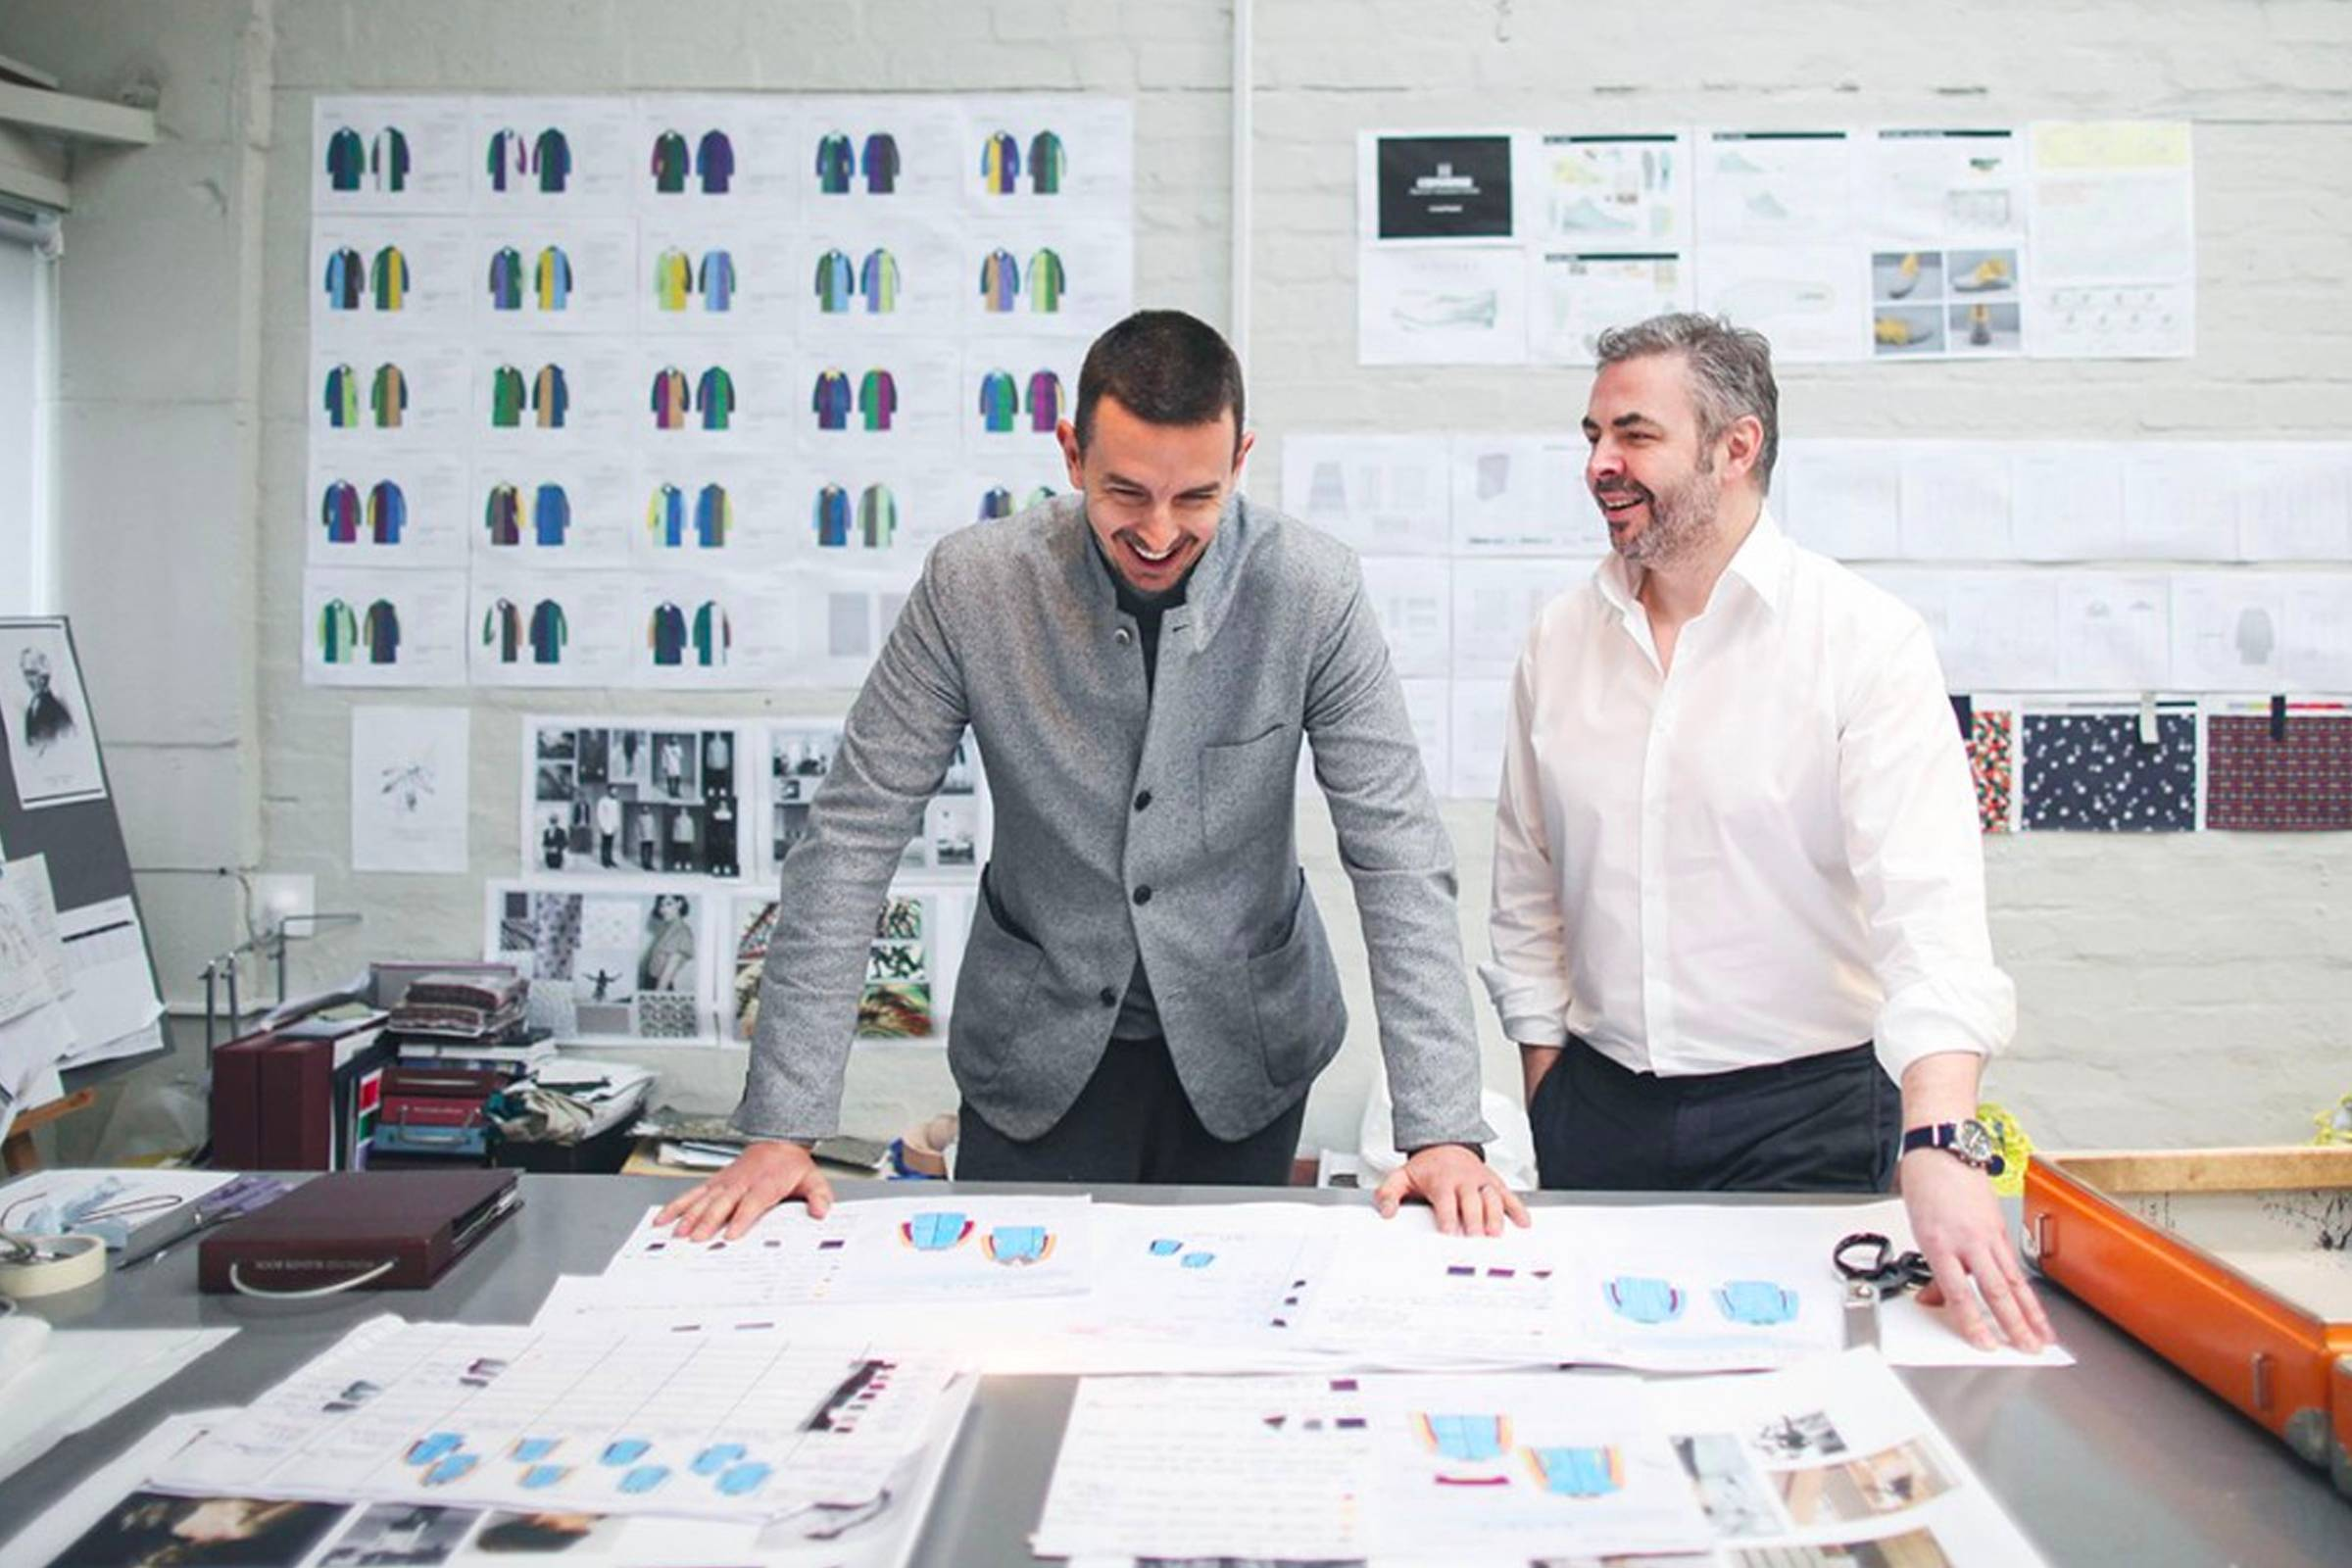 Daniel Dunko (right) working as CEO of Hancock: A heritage label named after Thomas Hancock, inspired by Mackintosh's lineage and launched after Dunko left Mackintosh in 2012